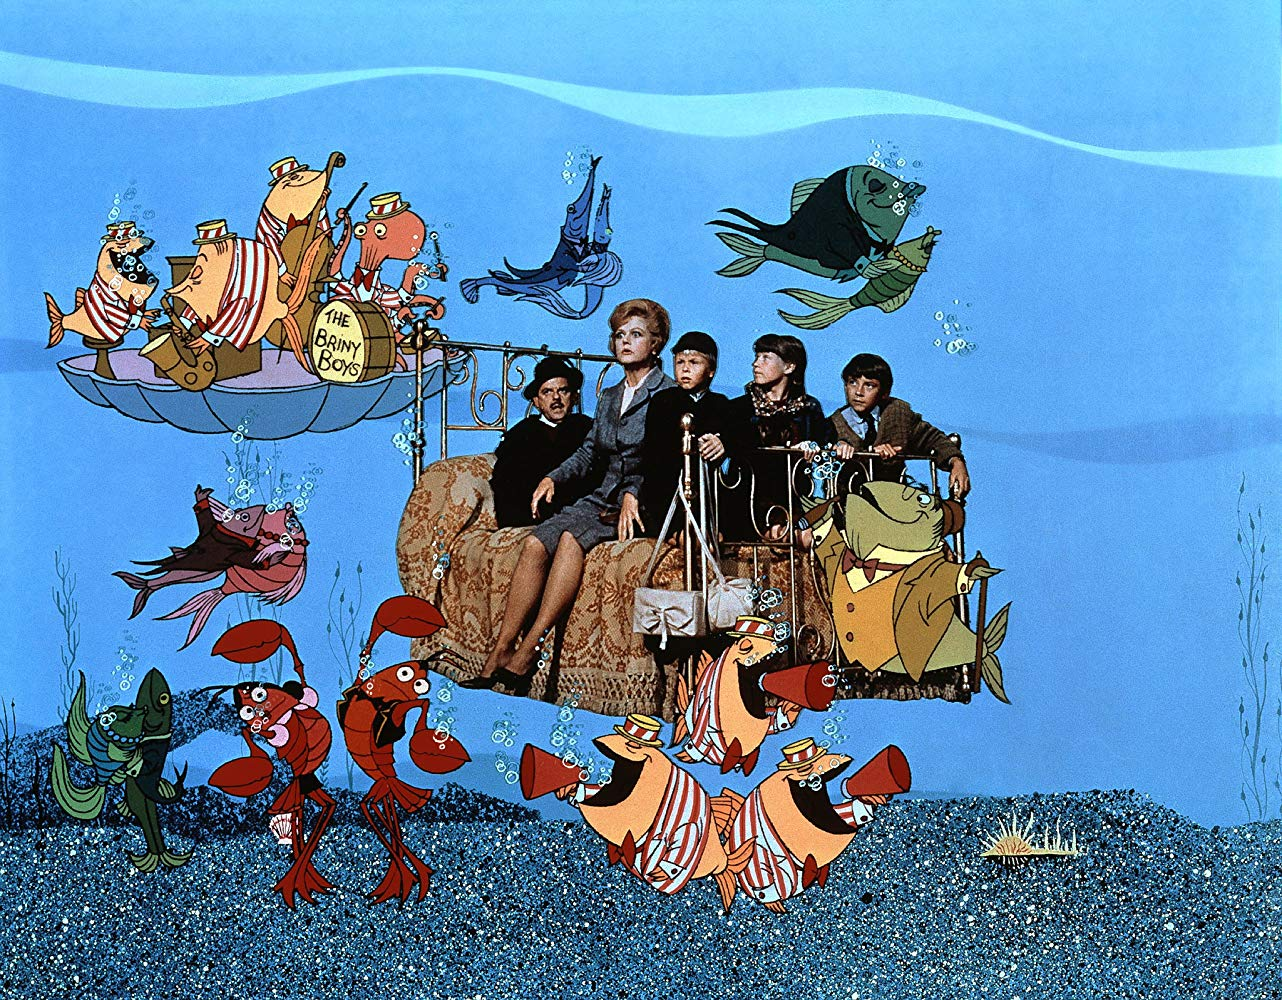 The arrival at the island of Naboombo aboard the flying bed in Bedknobs and Broomsticks (1971)